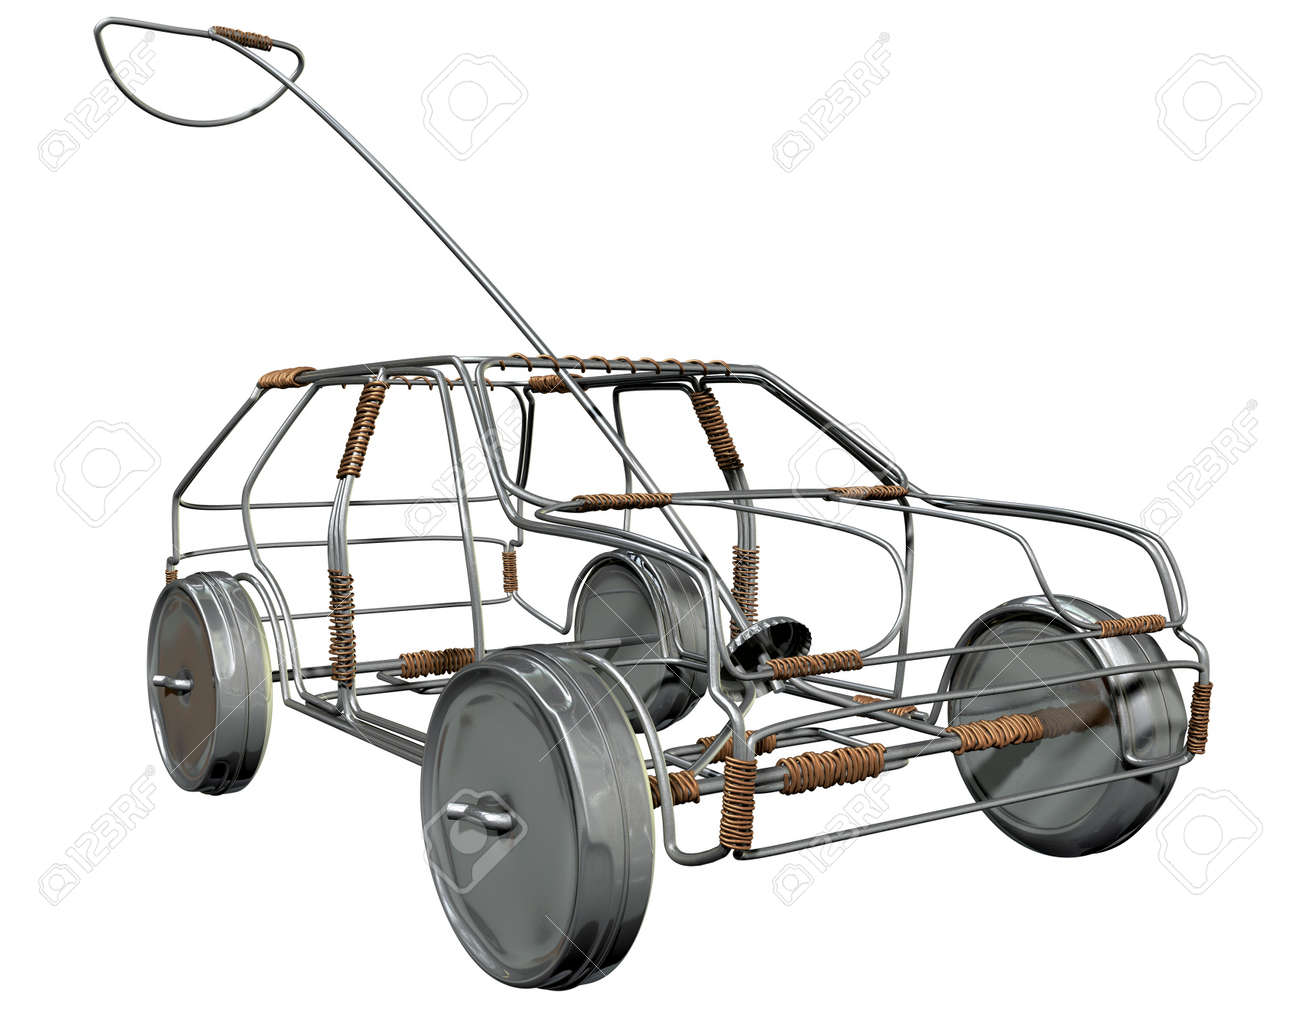 A traditional south african handmade wire toy car made out of metal and copper wire with tin cans as wheels on an isolated background Stock Photo - 19334516